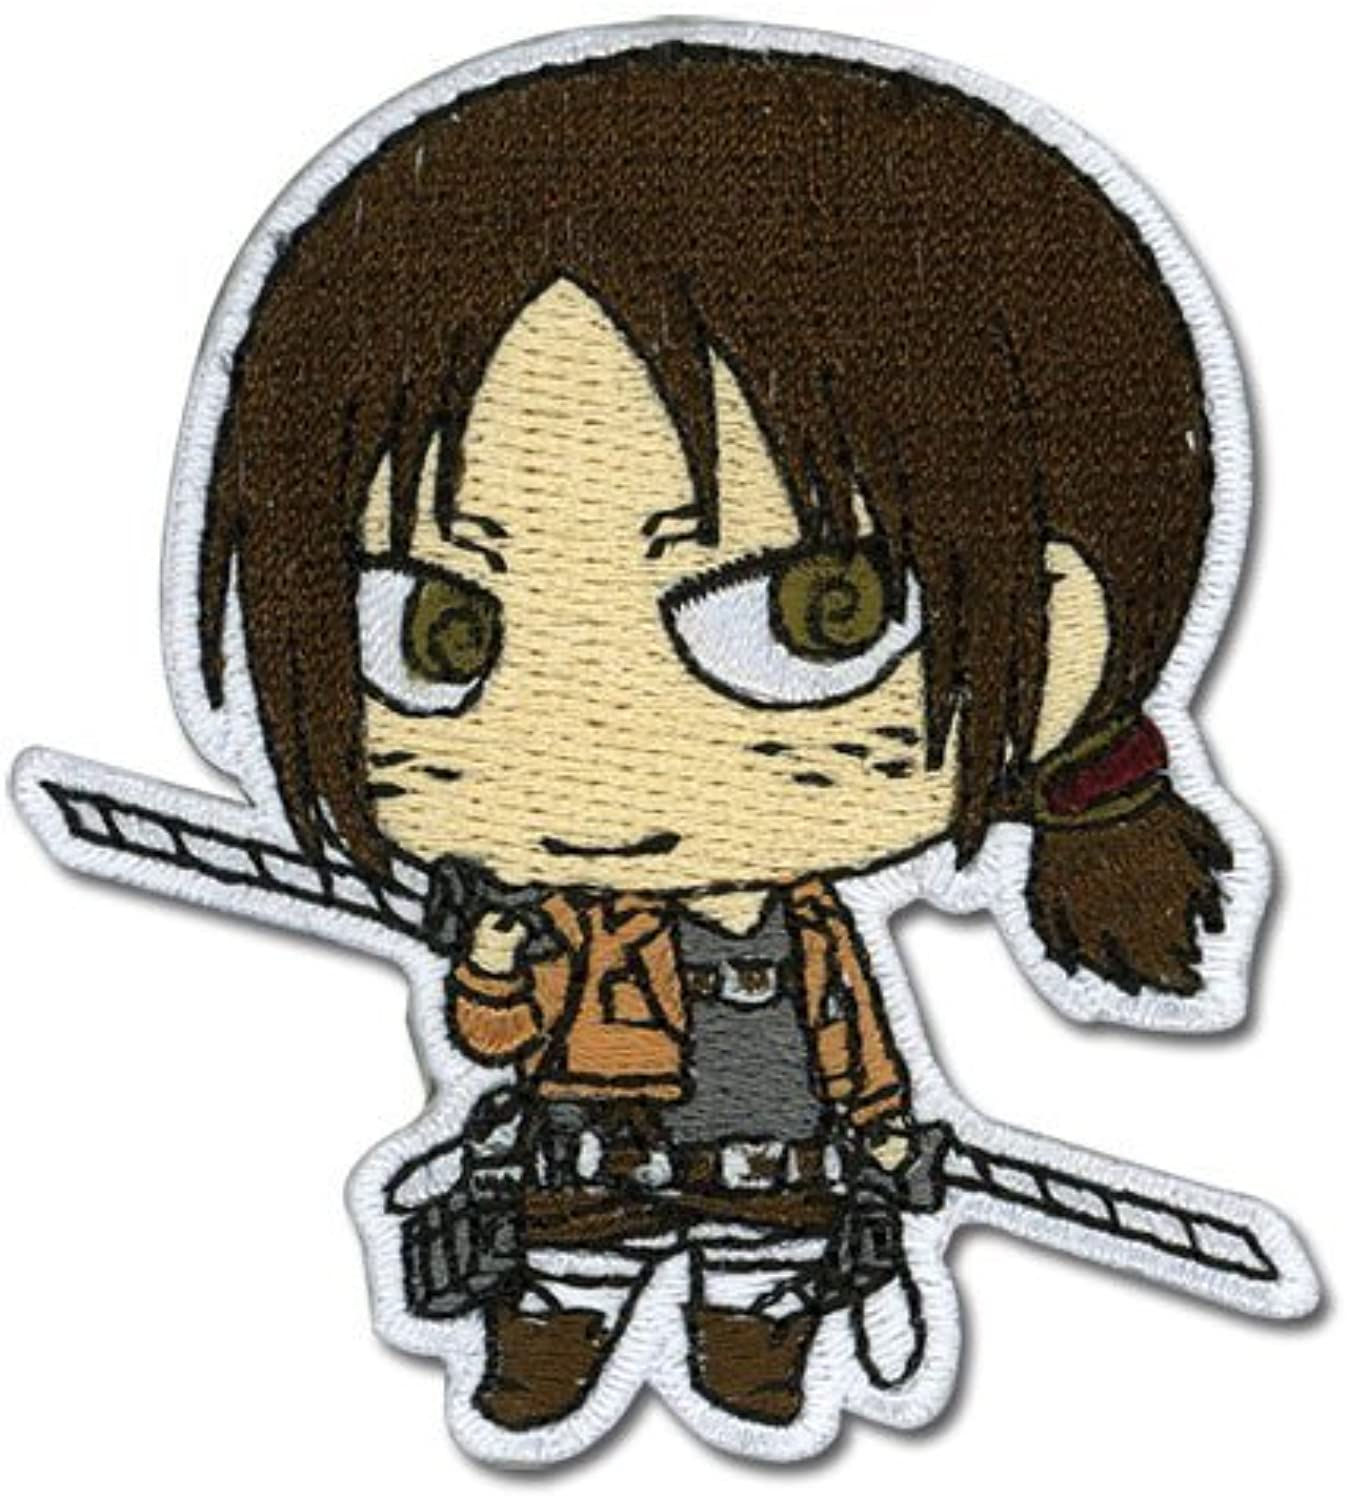 Patch  Attack on Titan  New SD Ymir Anime Licensed ge44996 by Animewild